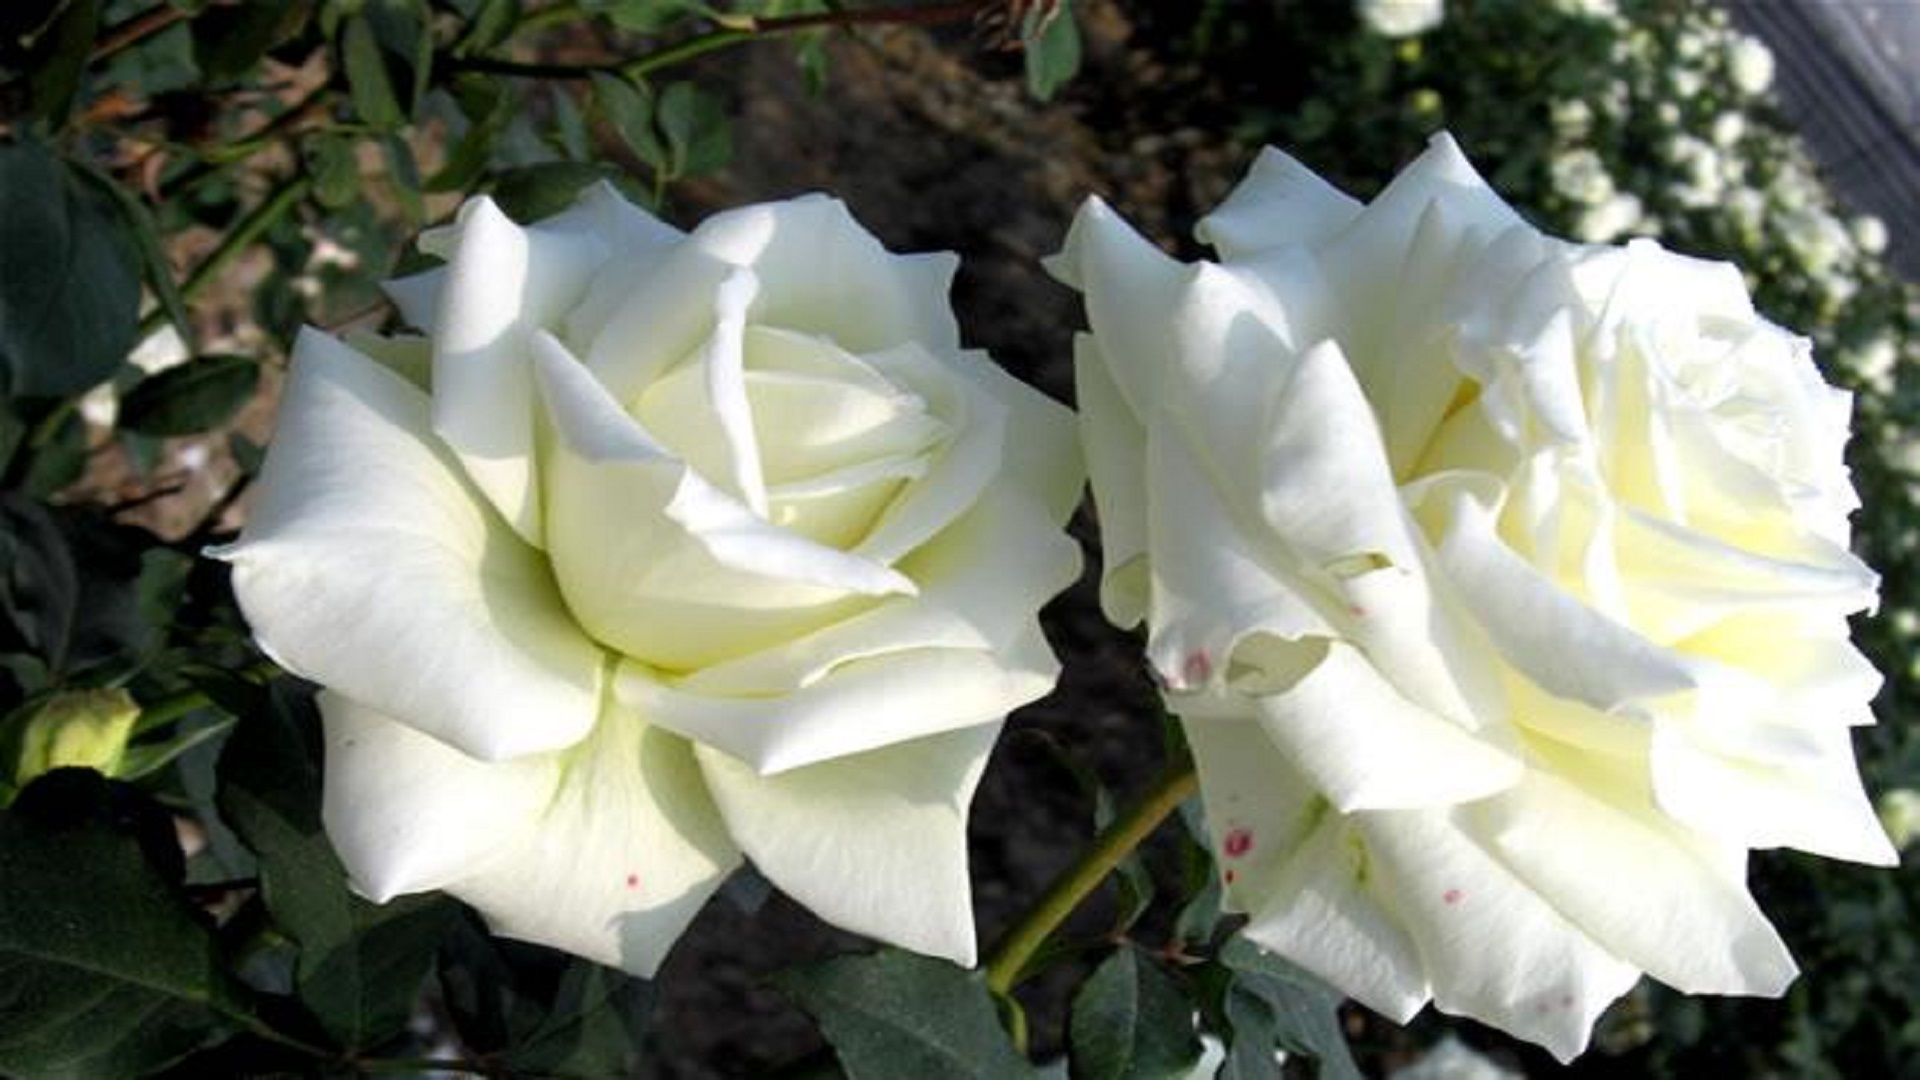 White roses | desktop backgrounds.